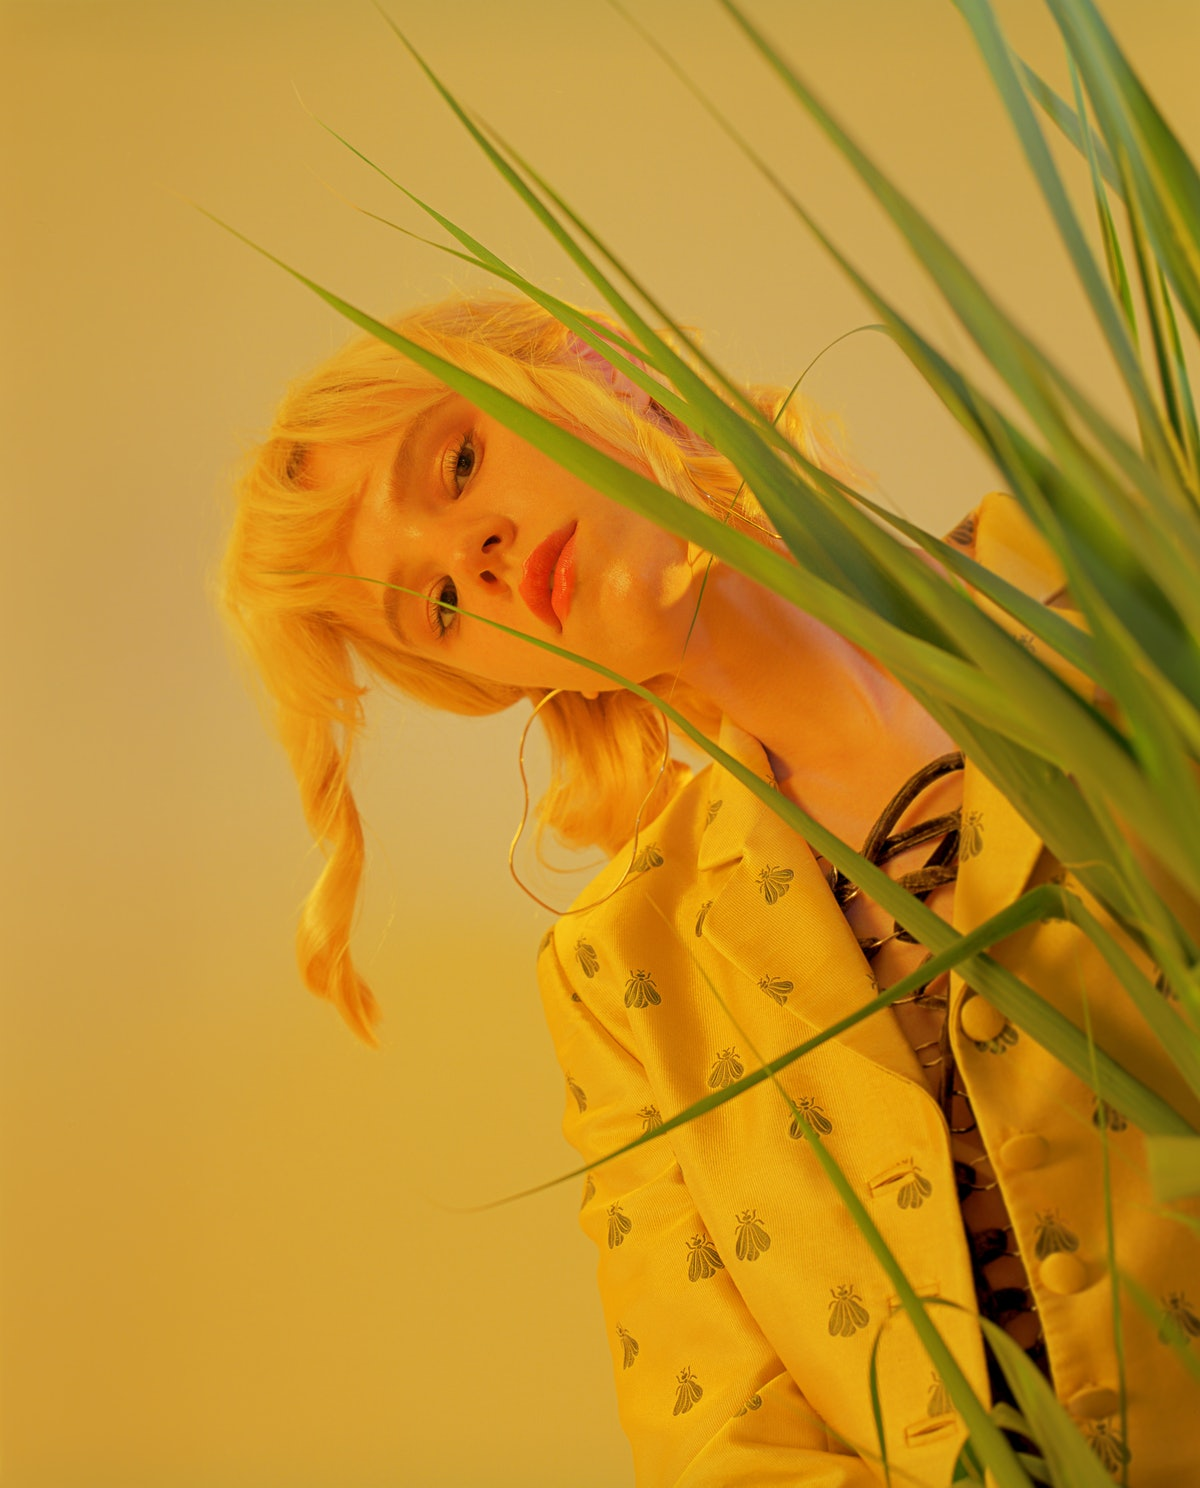 Young Pisces woman peeking out from behind a plant because she's difficult to understand.